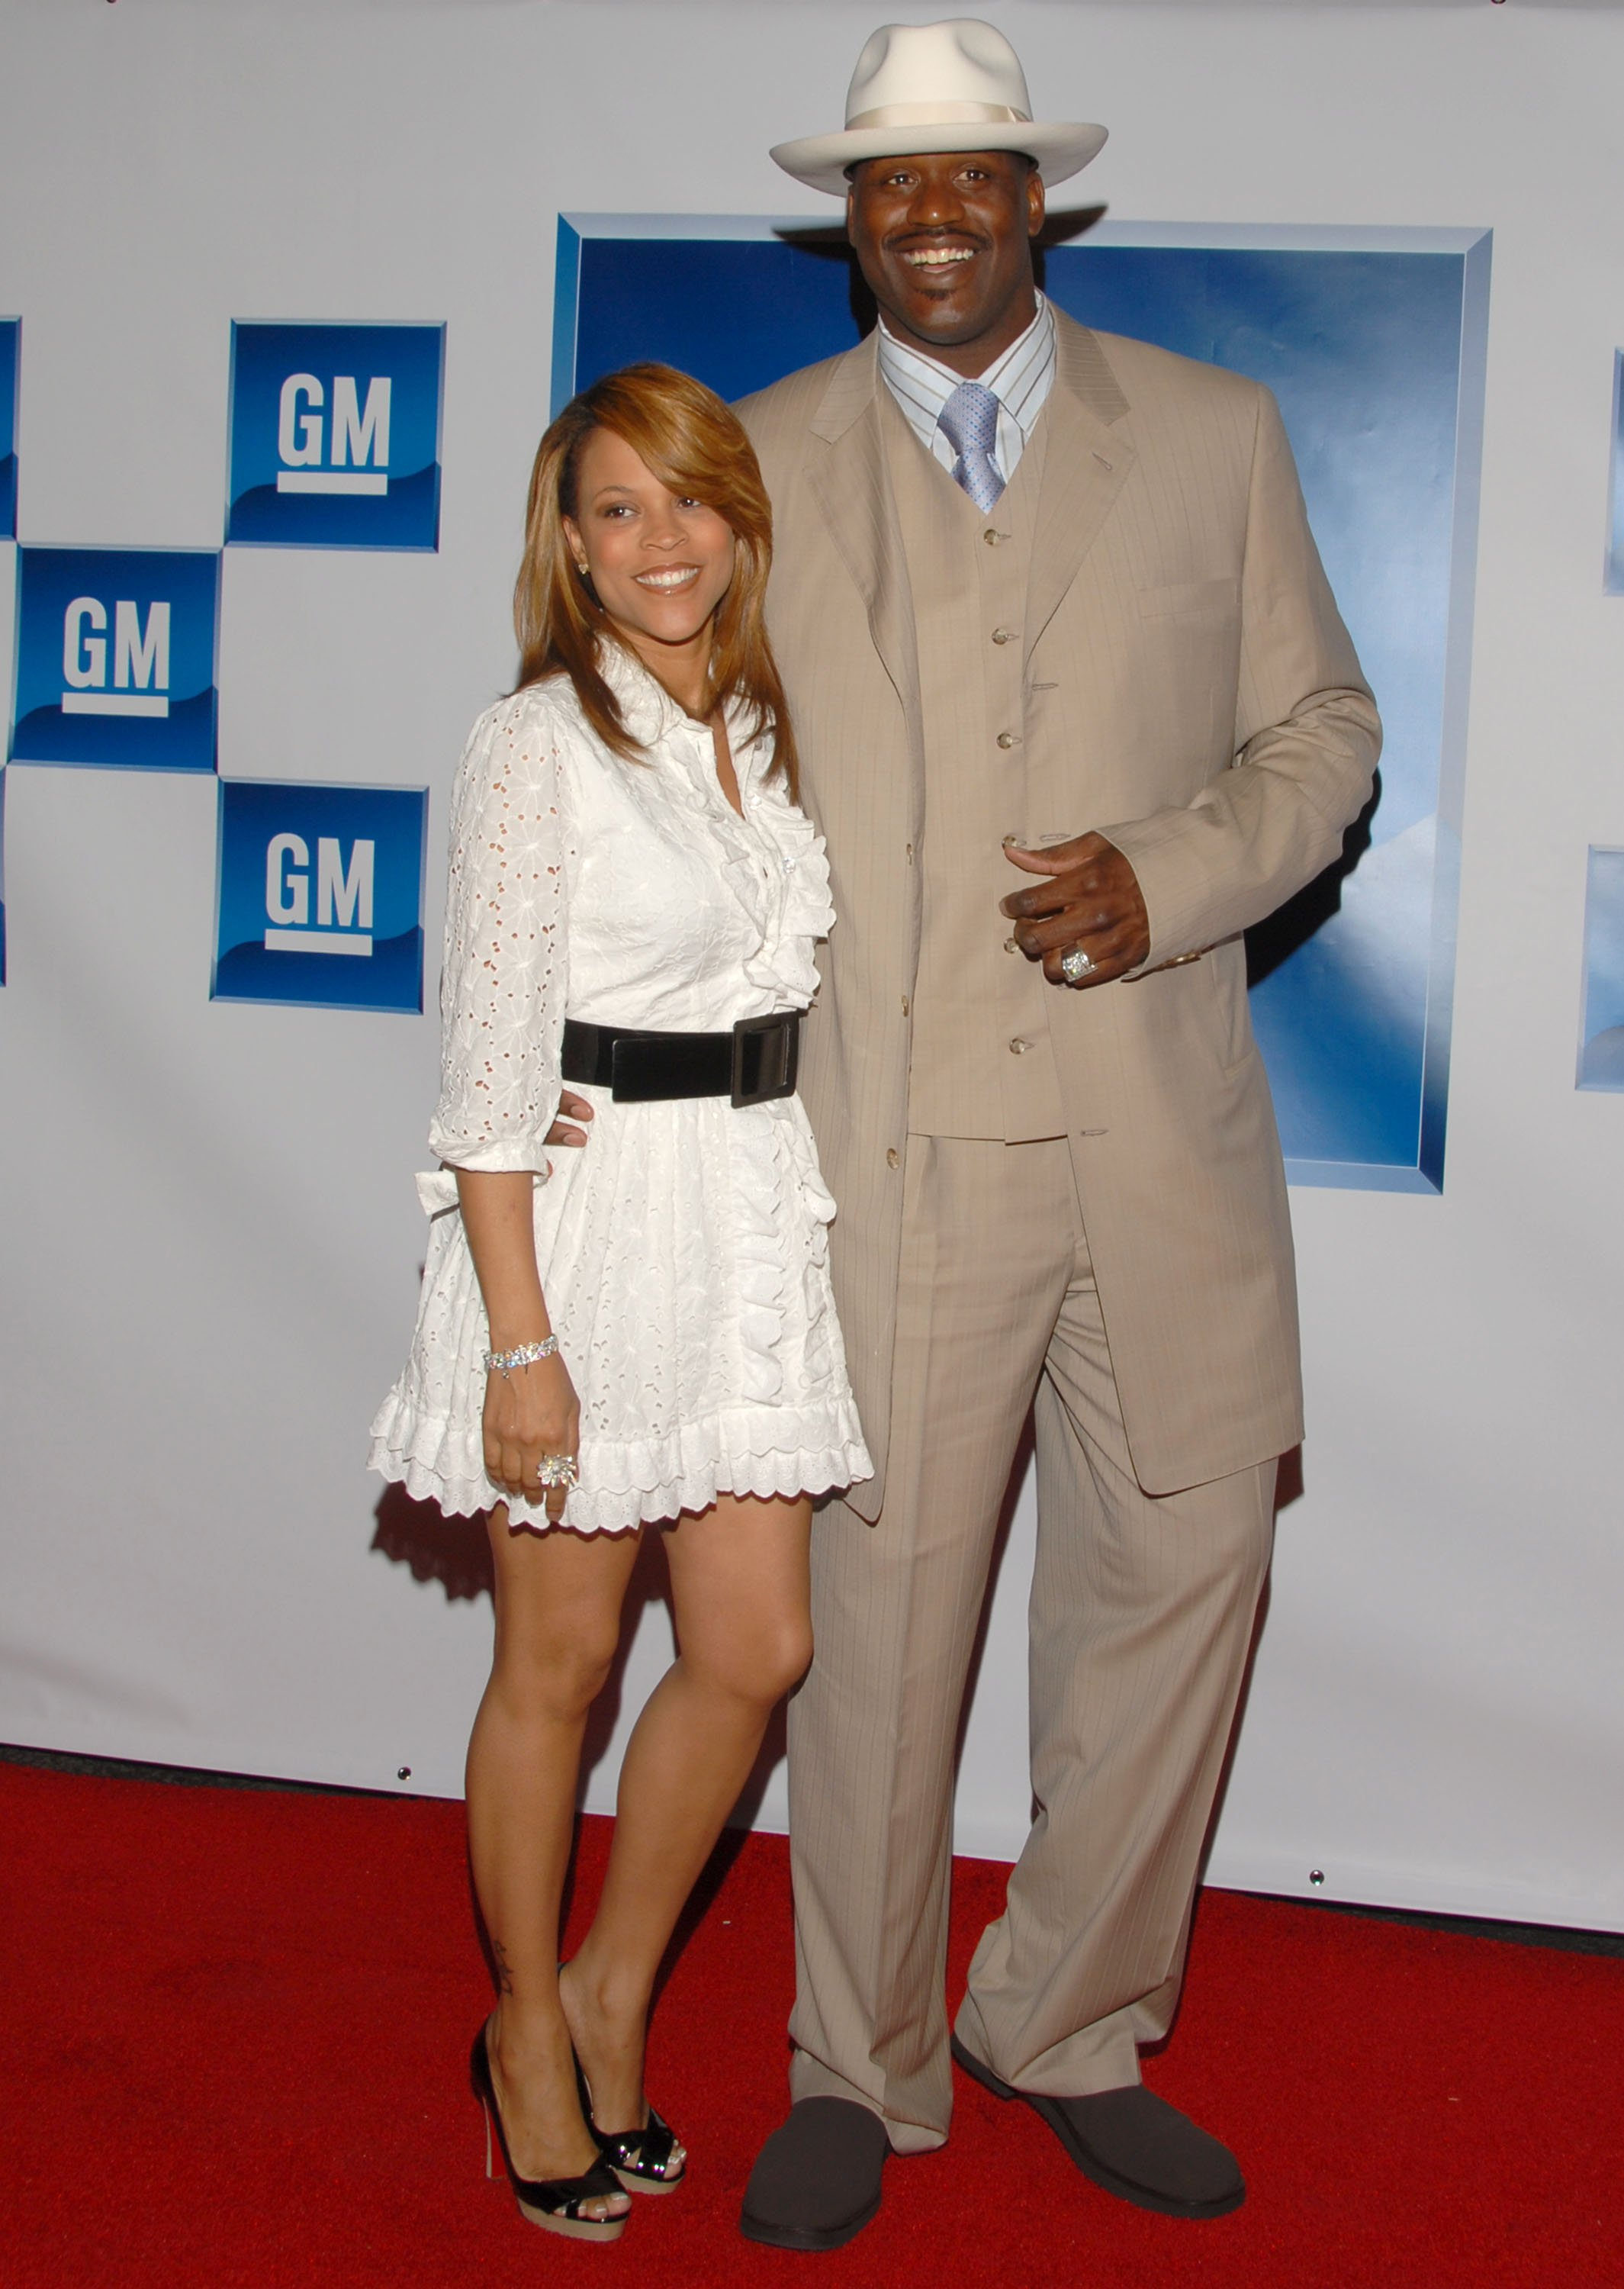 Shaunie & Shaquille O'Neal at the 3rd annual GM All-Car Showdown in Hollywood, California. |Photo: Getty Images